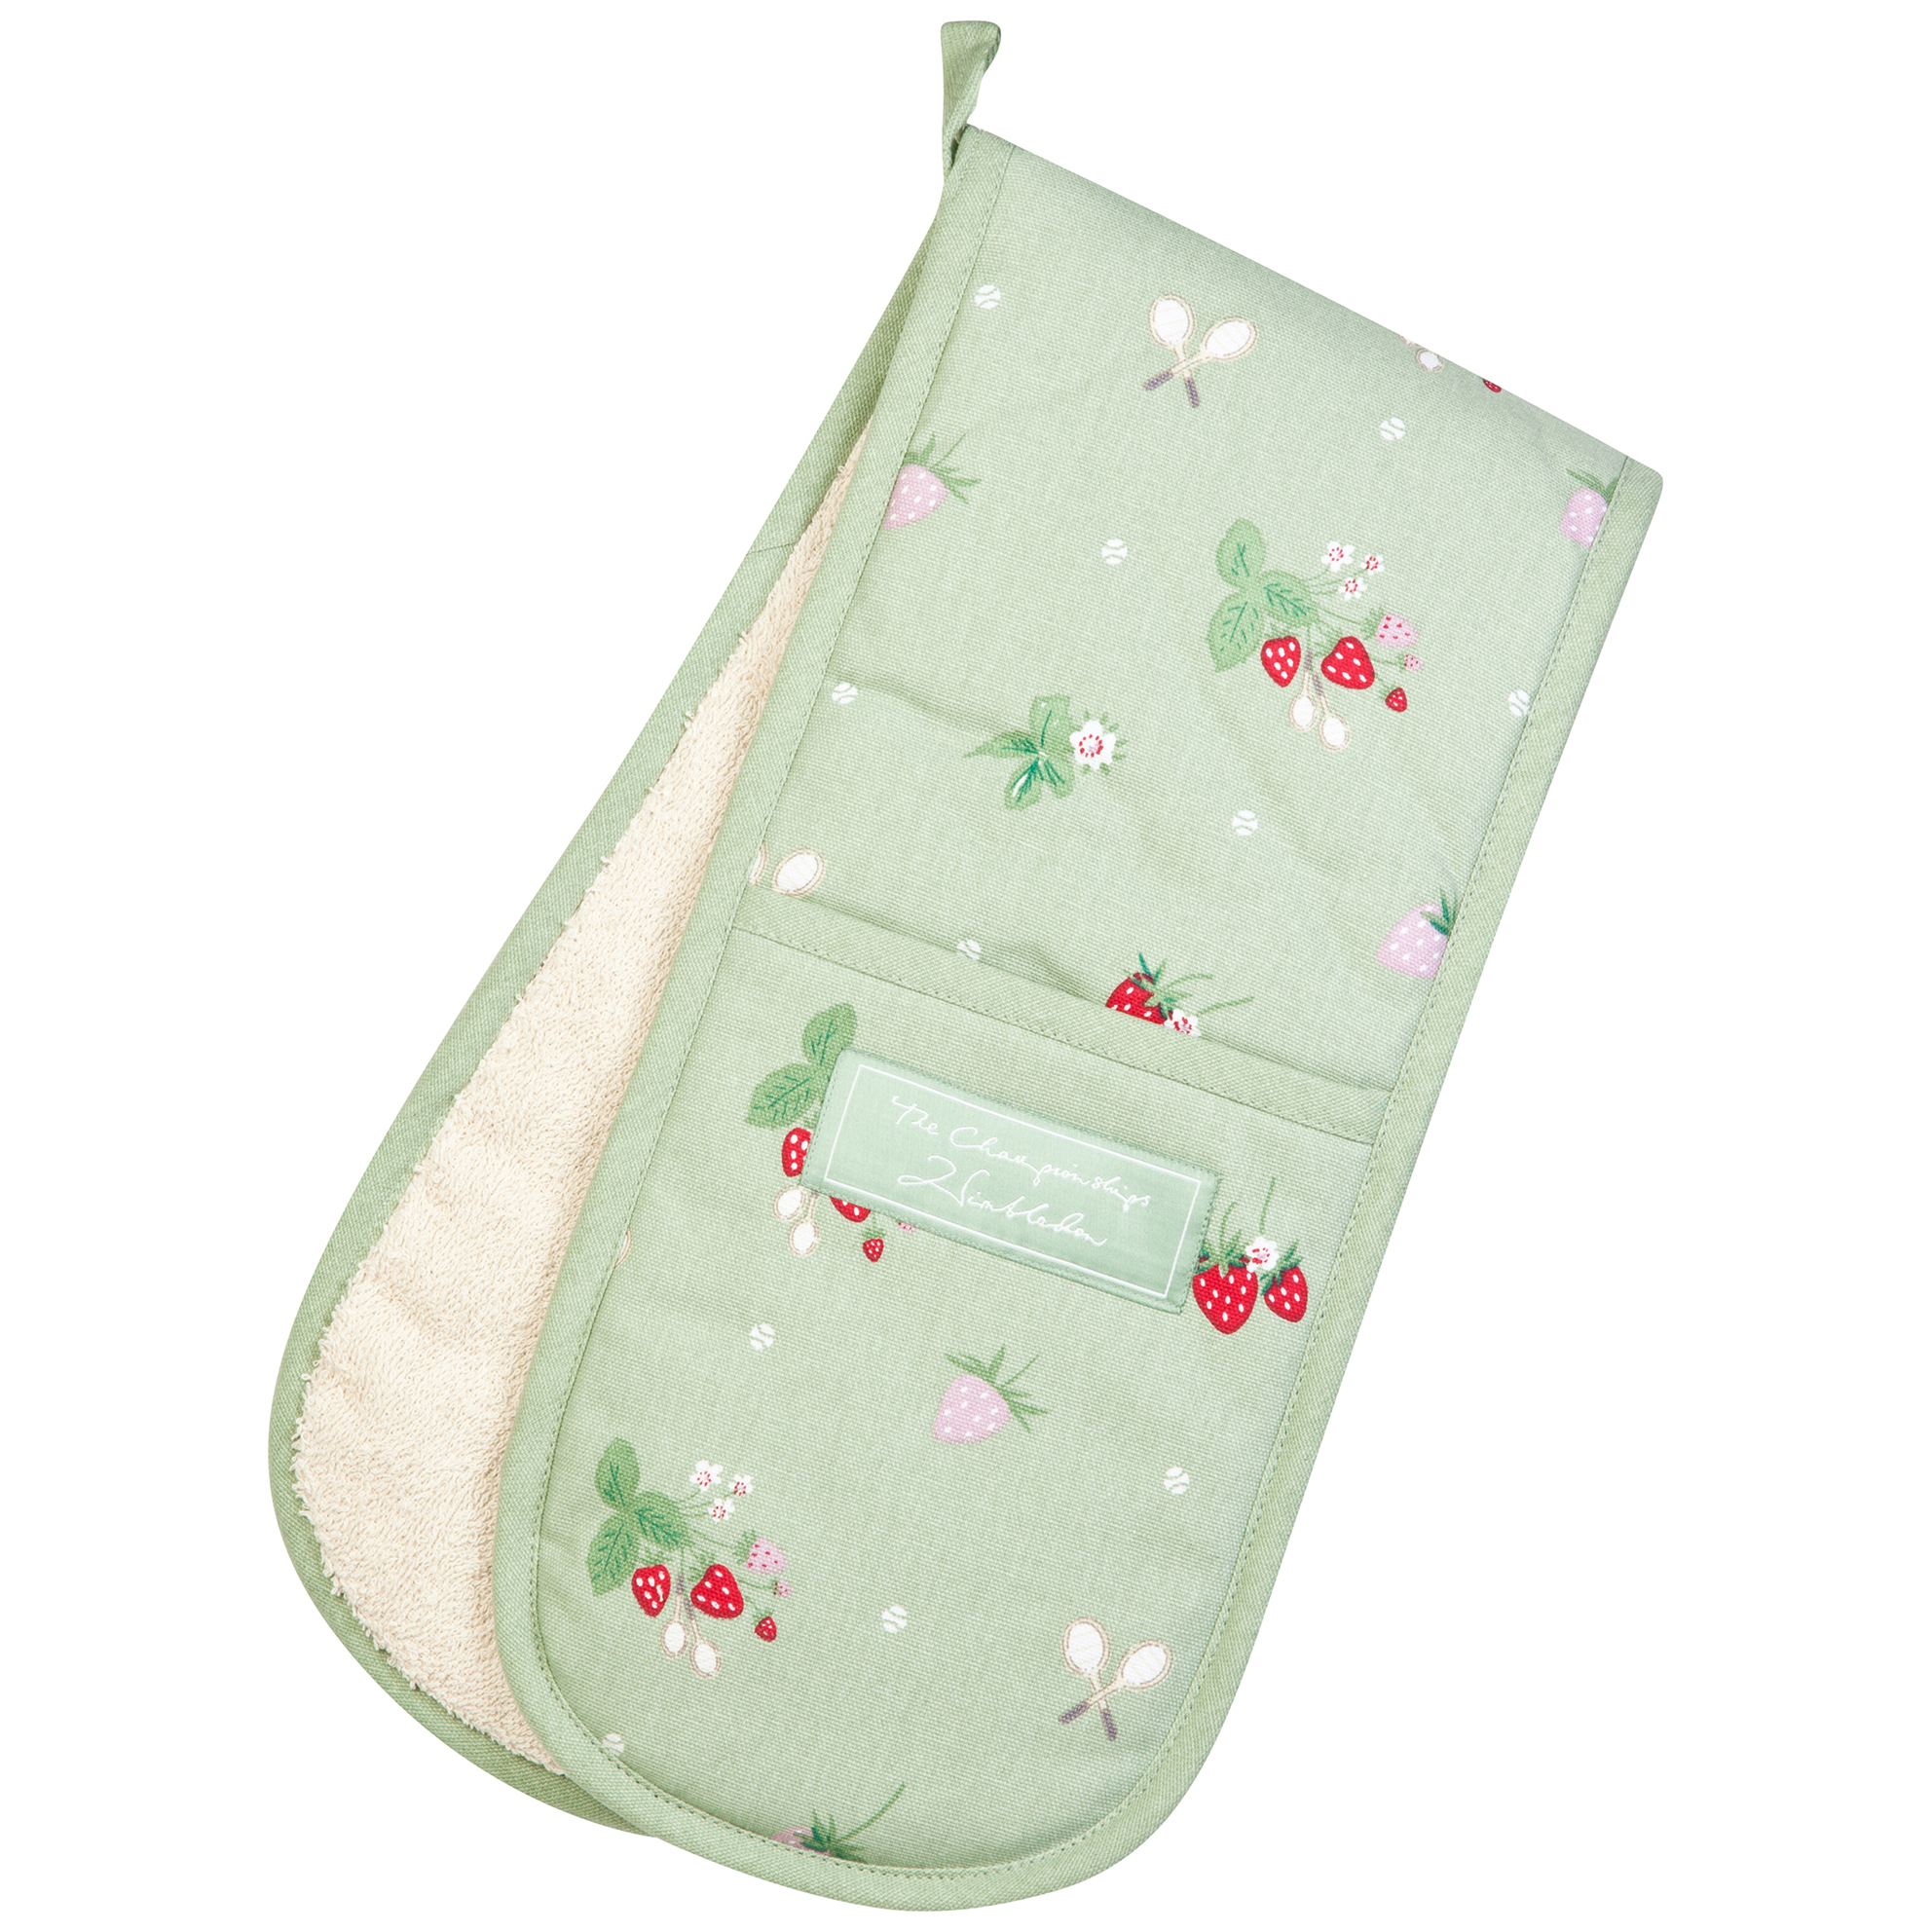 Wimbledon Oven Gloves With Strawberries Design - Green